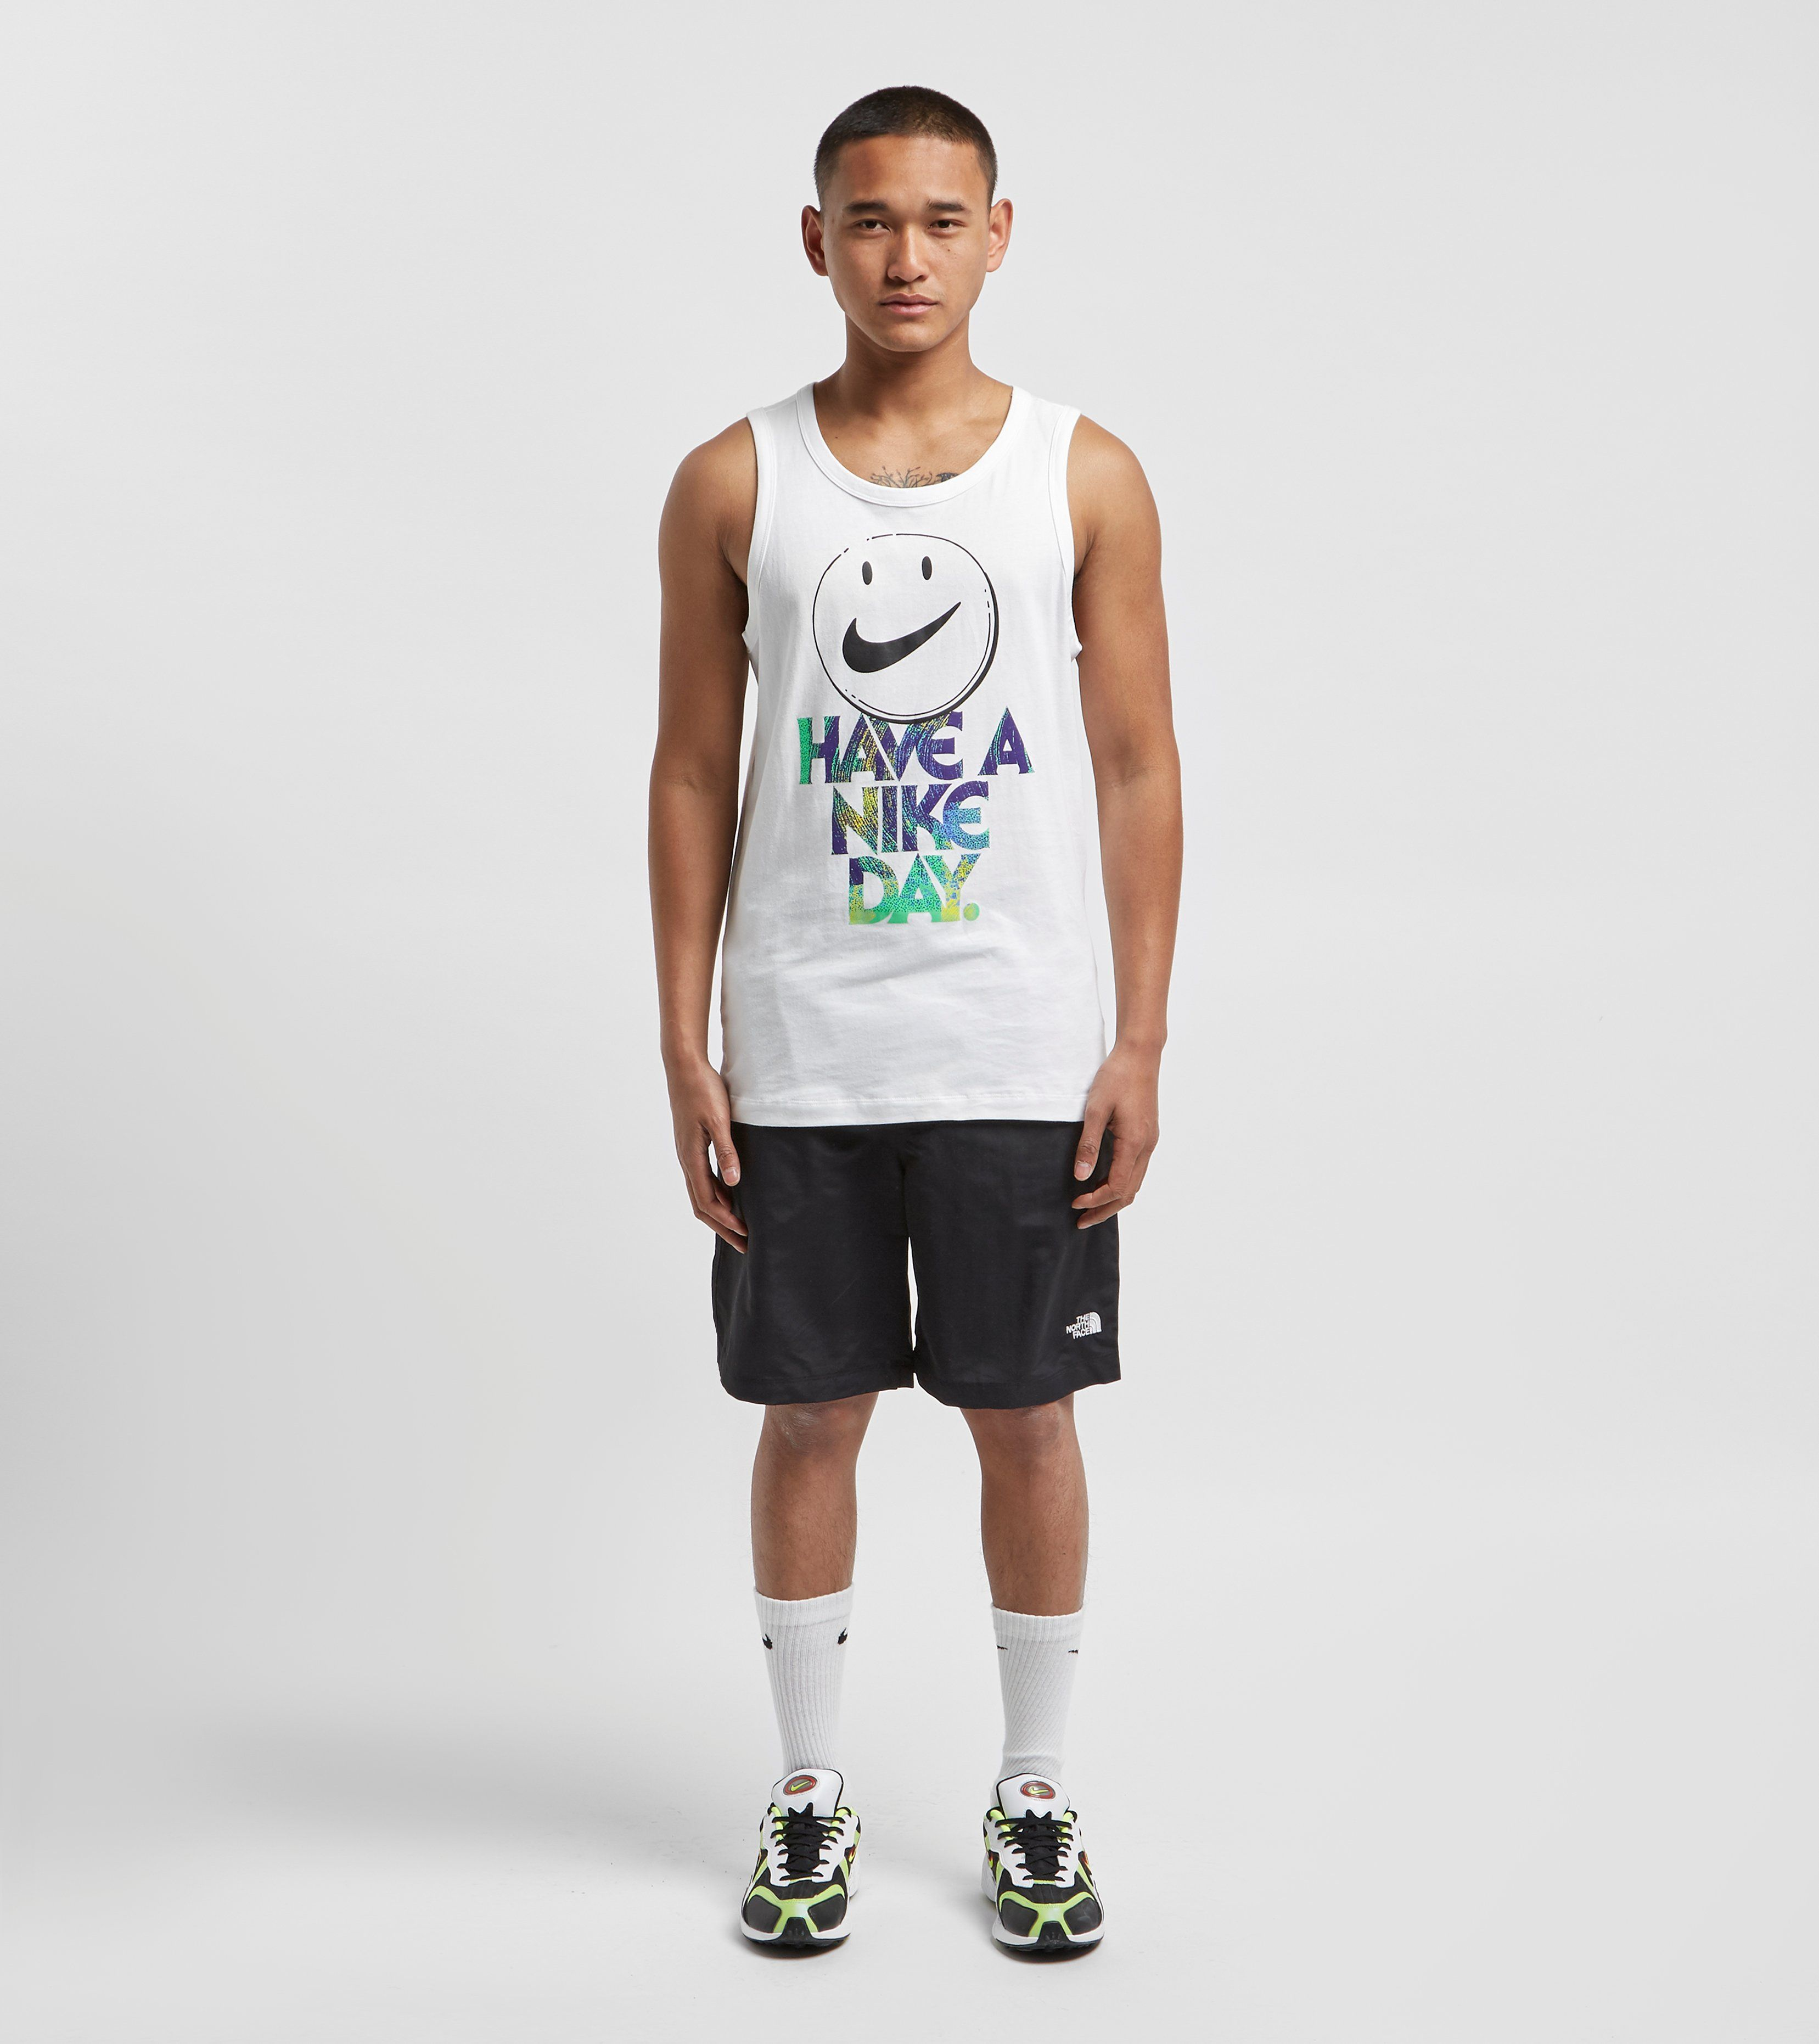 Nike Have A Nike Day Vest